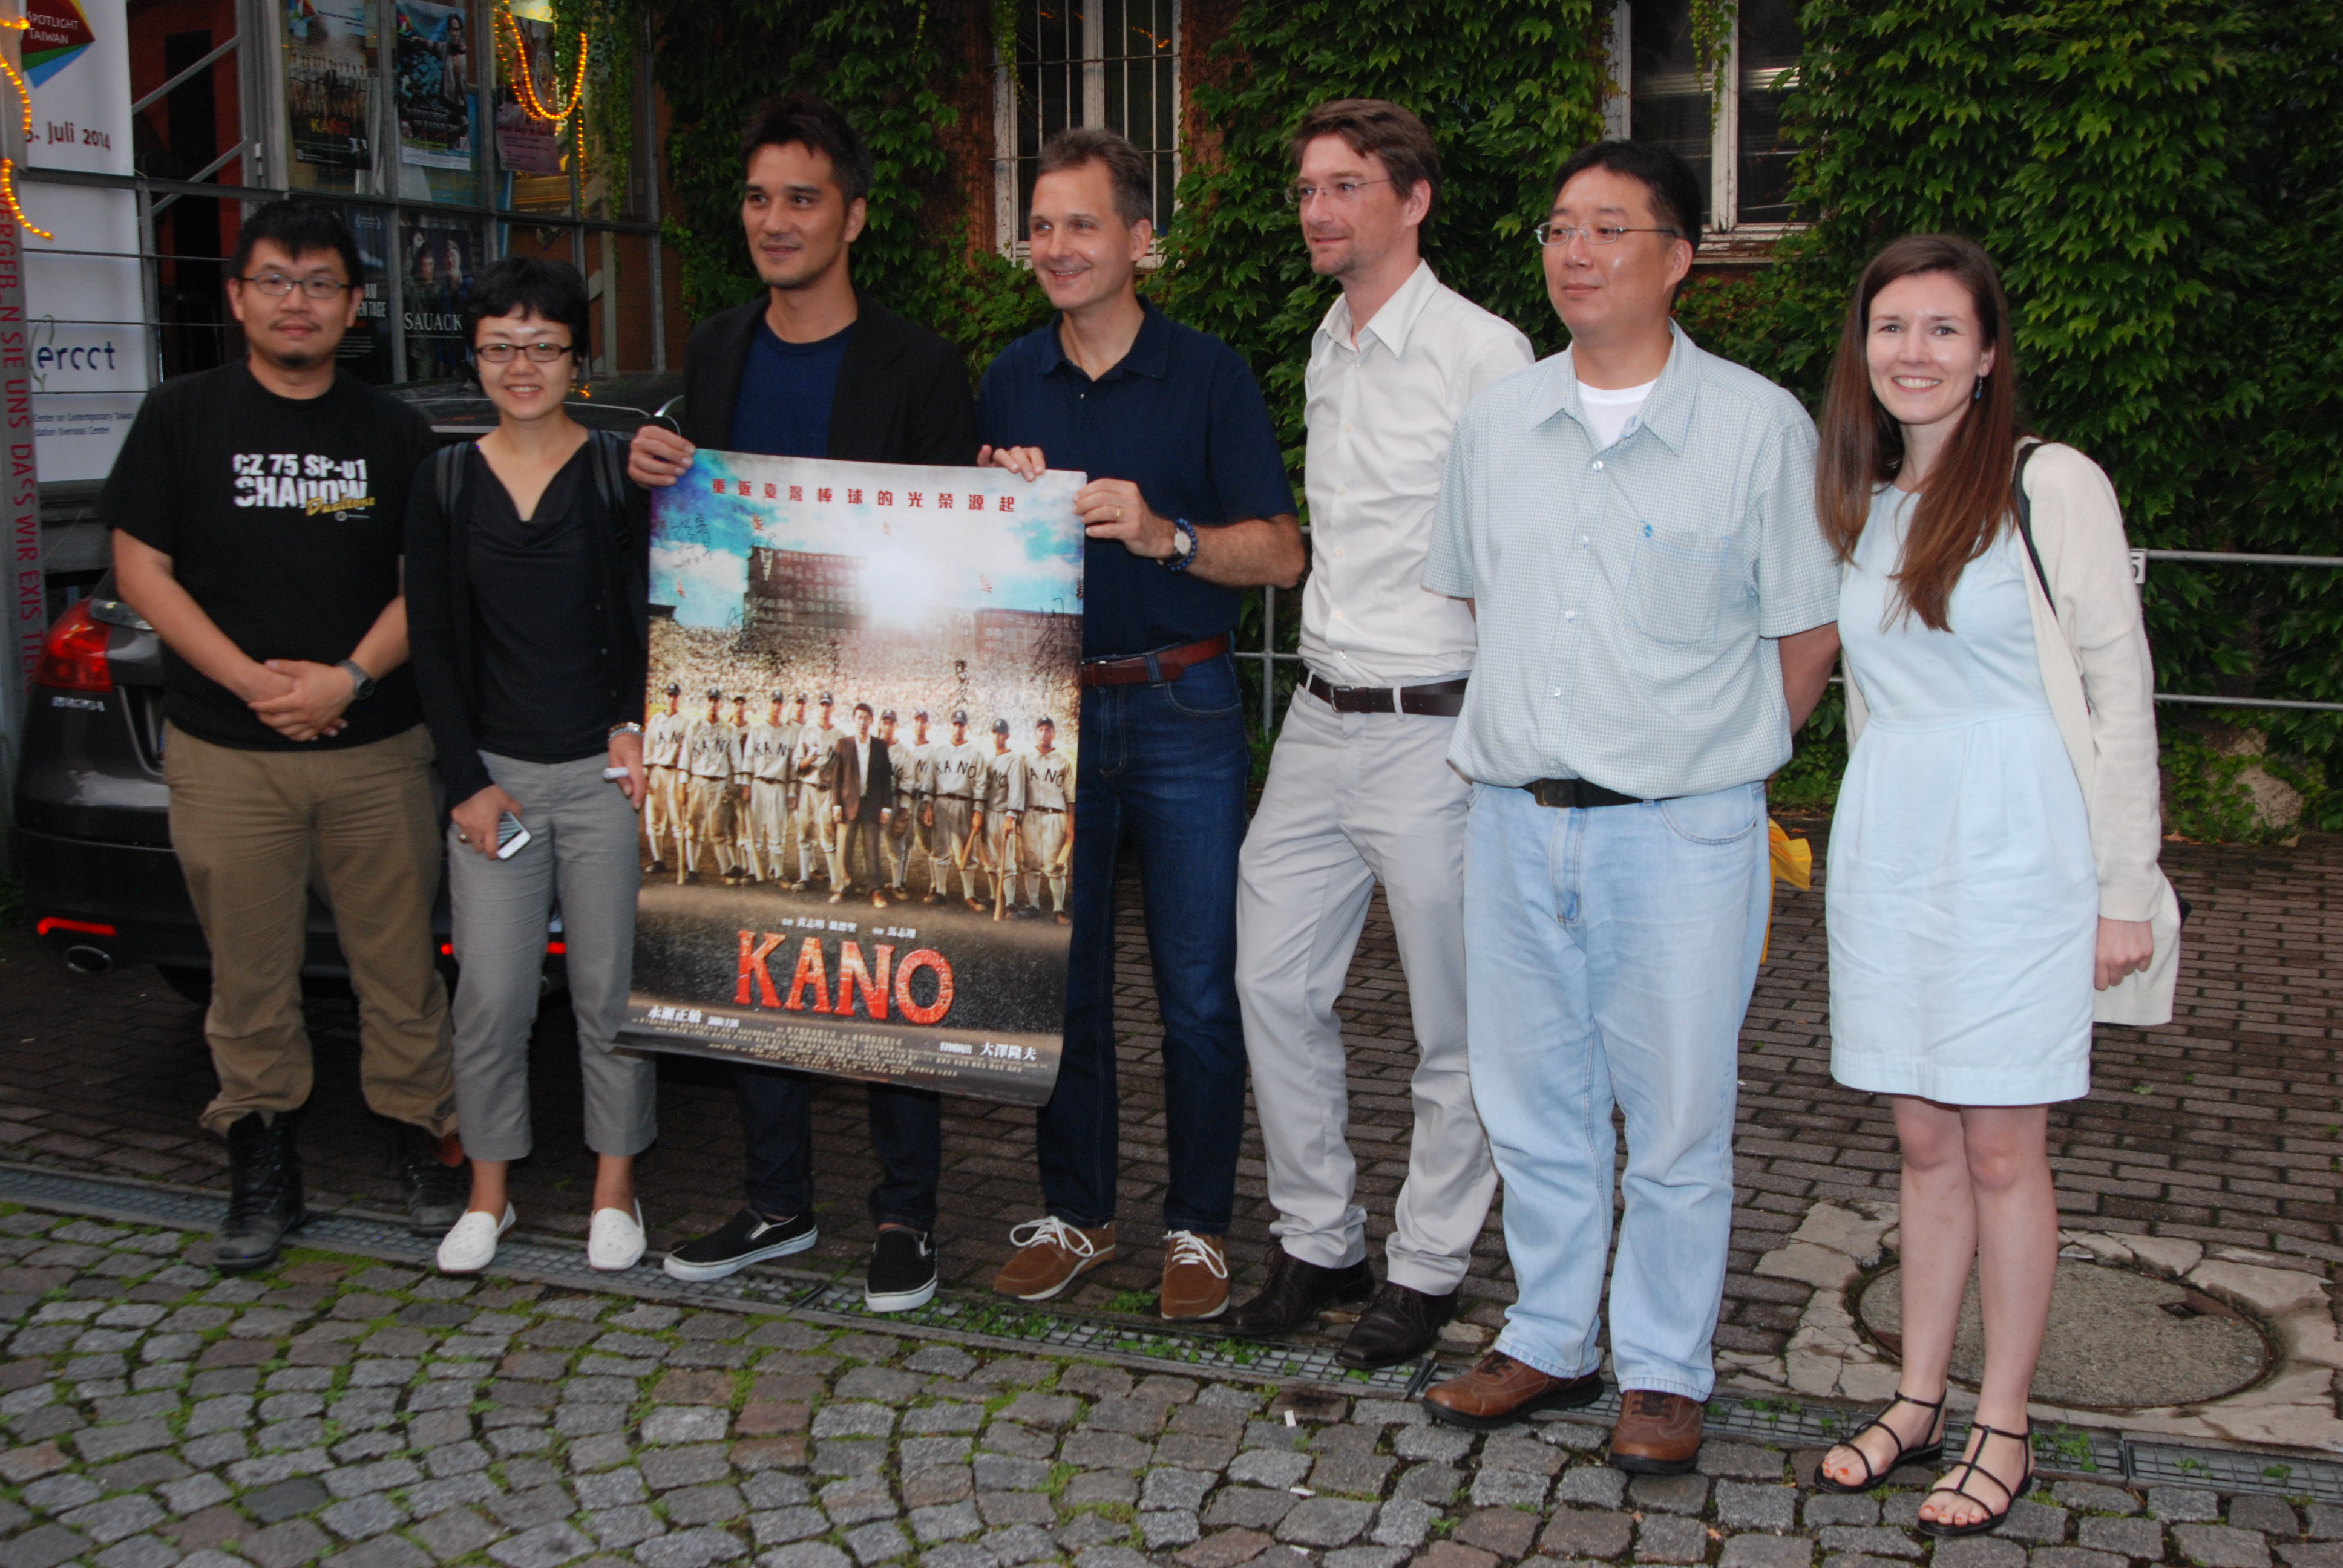 Umin Boya presented KANO in Tübingen